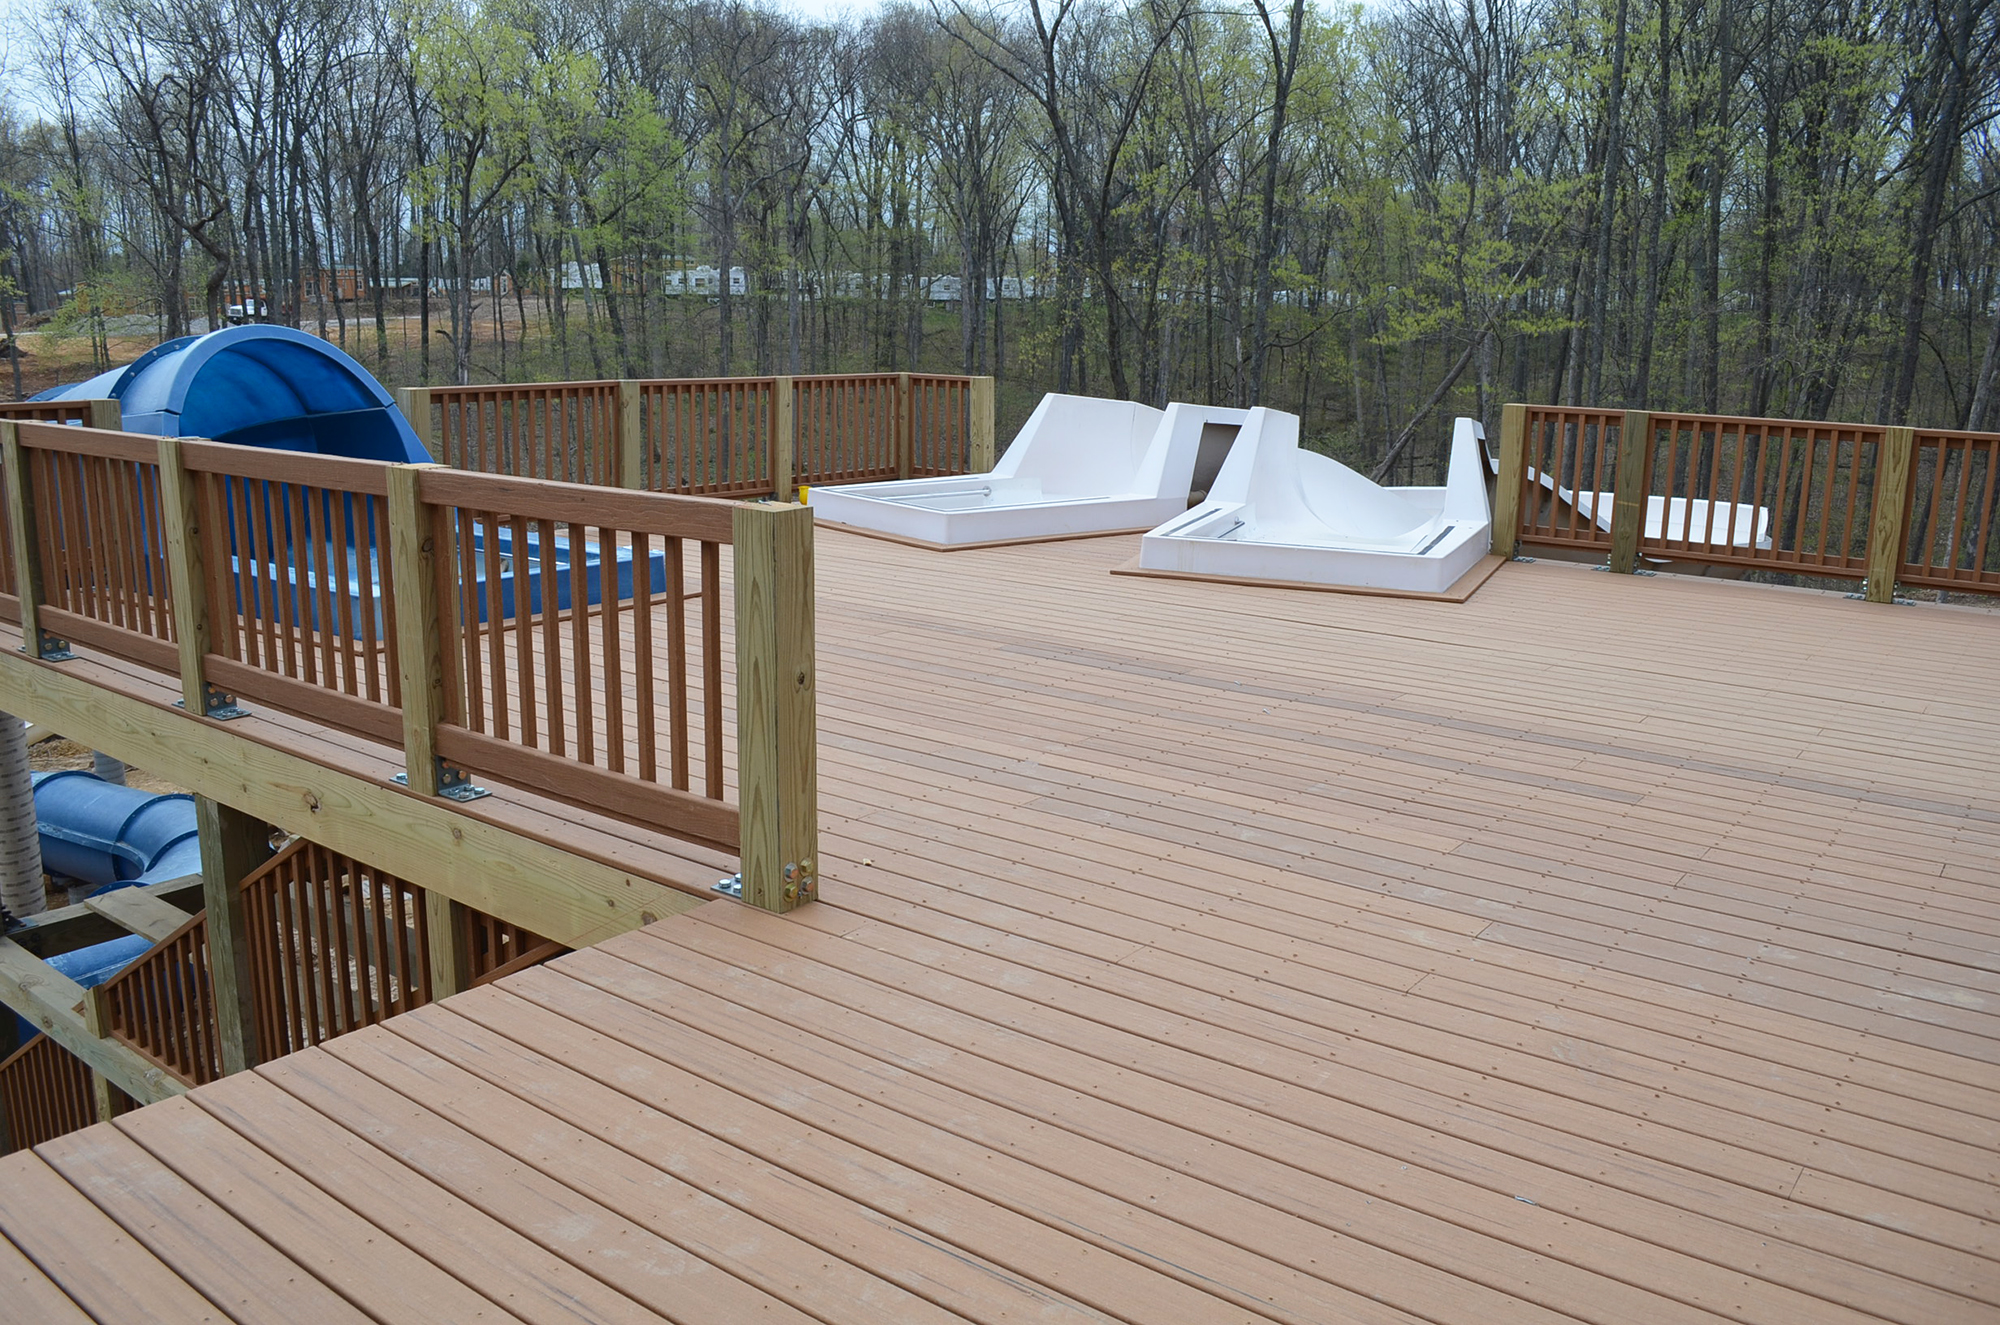 Getting on deck high performance options for composite decking high performance composite decking provides a water resistant slip resistant and baanklon Image collections